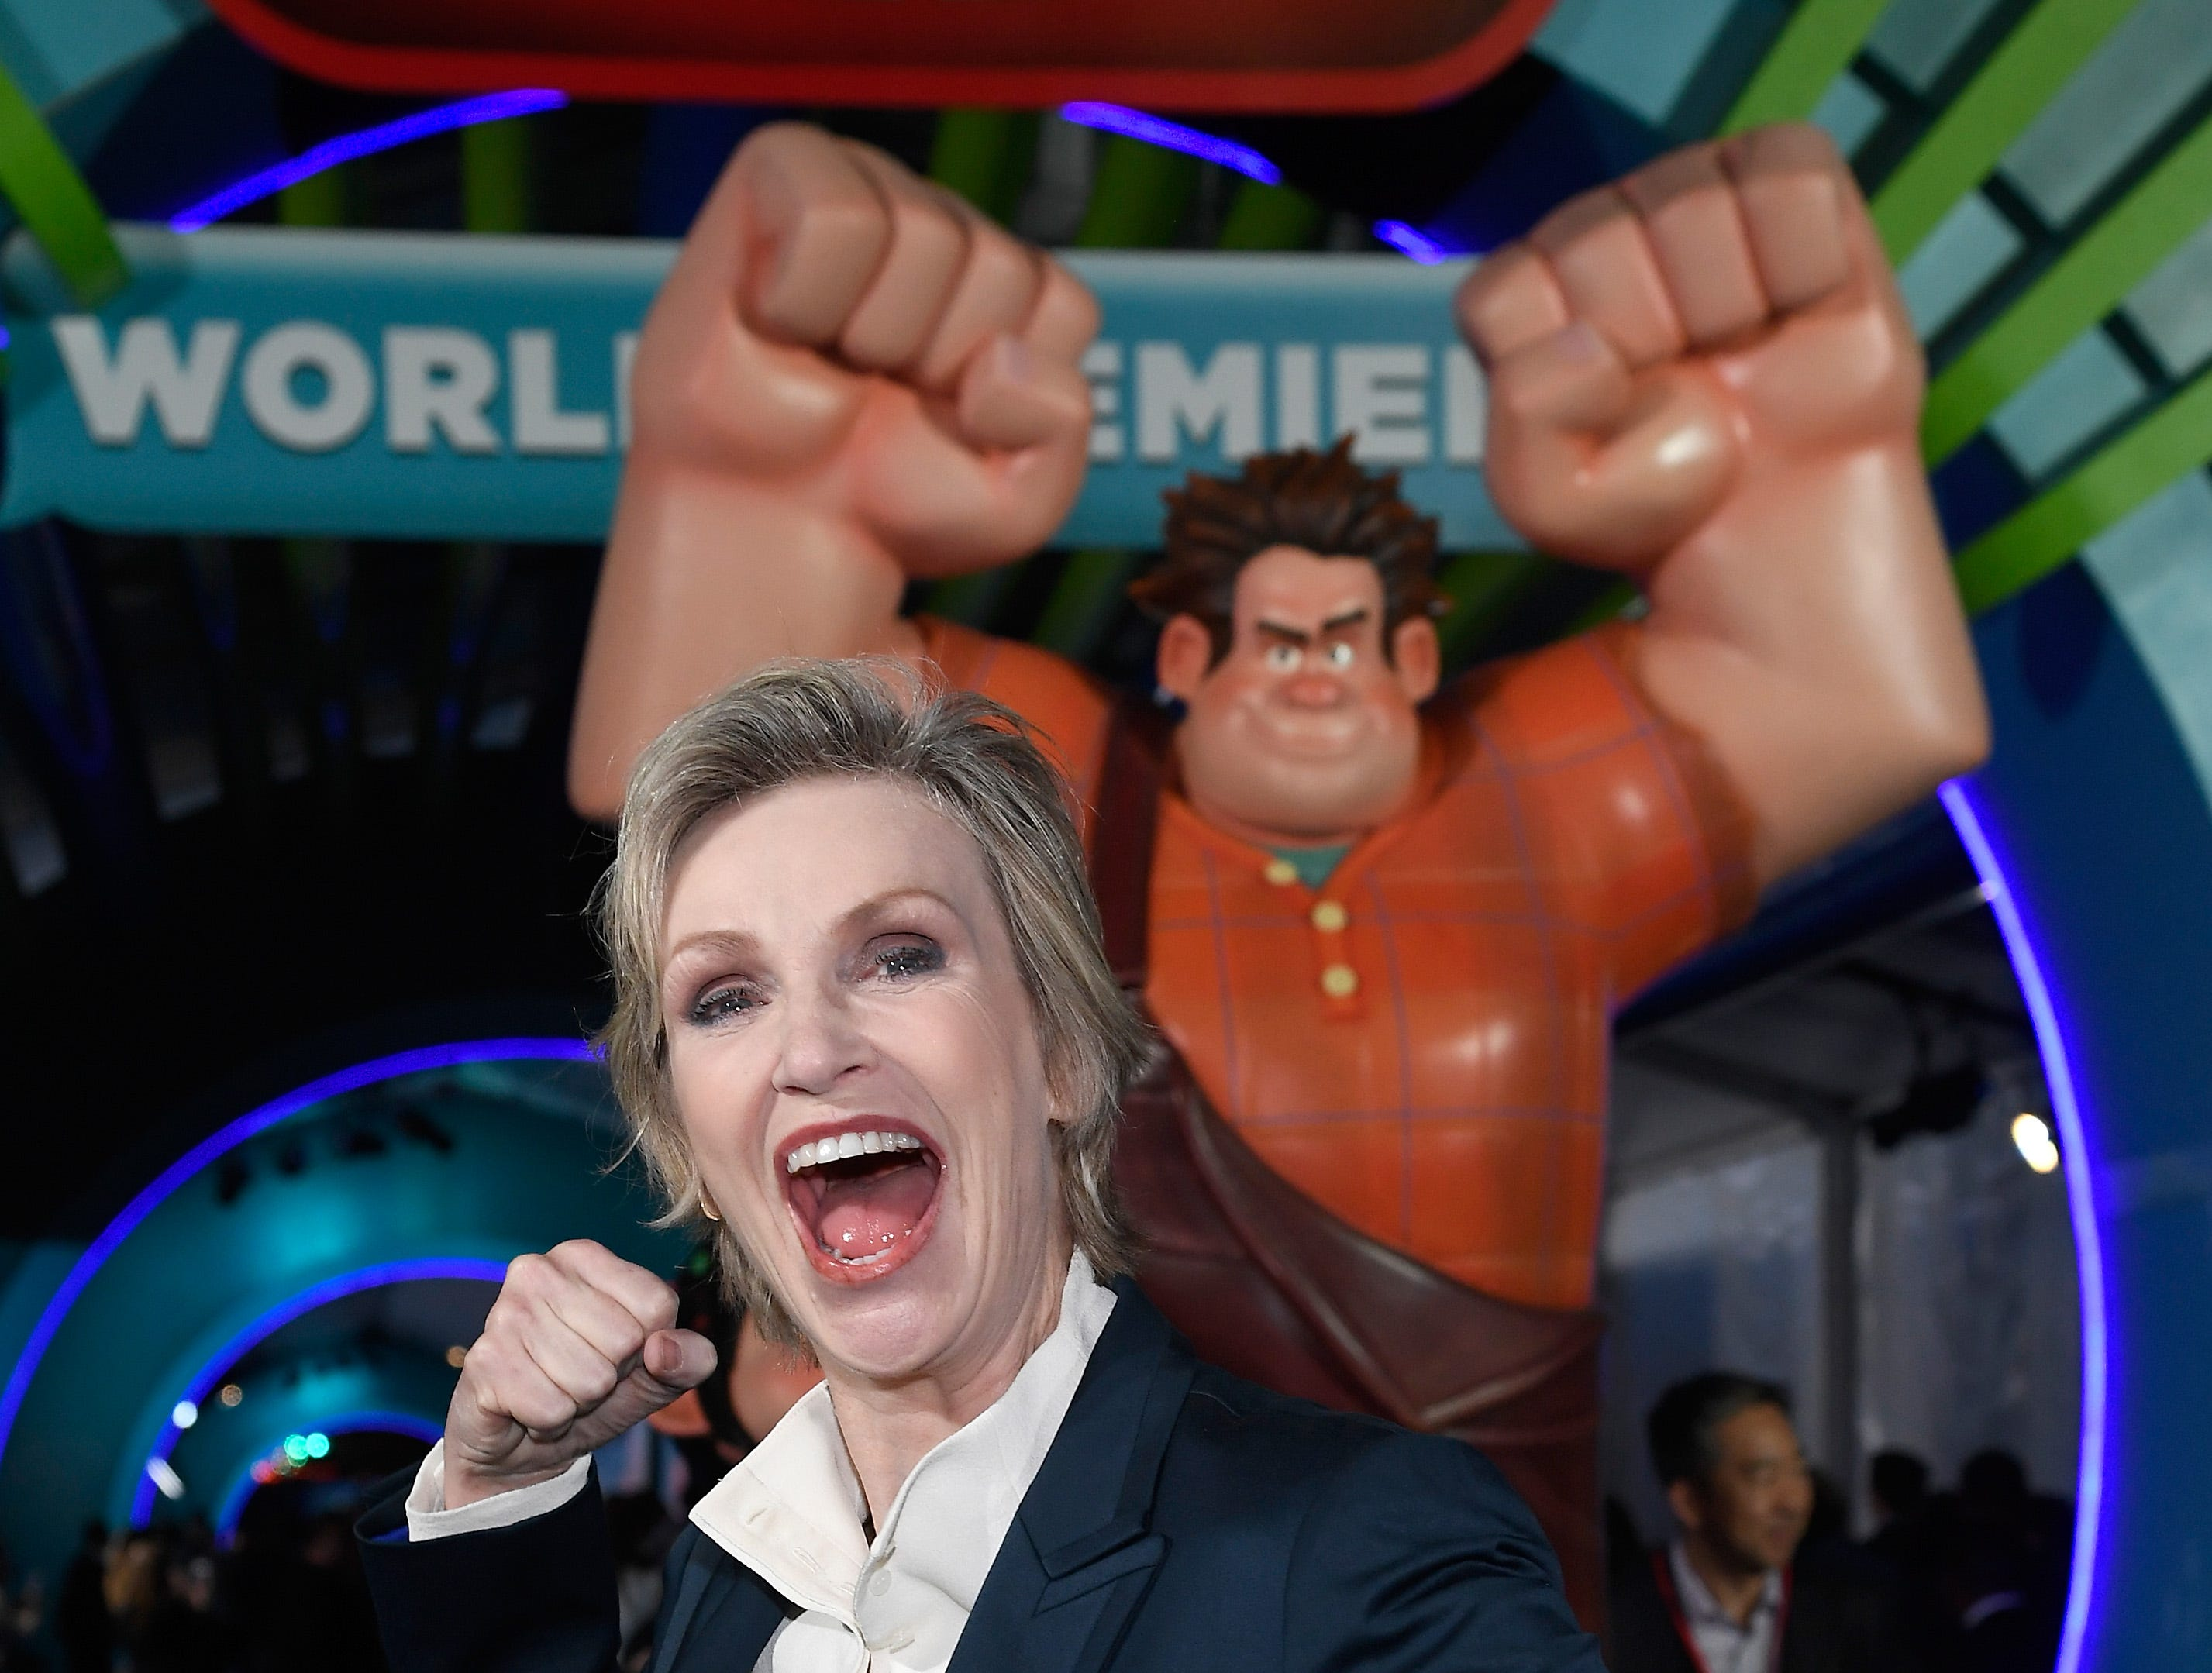 "LOS ANGELES, CA - NOVEMBER 05:  Jane Lynch attends the premiere of Disney's ""Ralph Breaks the Internet"" at El Capitan Theatre on November 5, 2018 in Los Angeles, California.  (Photo by Kevork Djansezian/Getty Images) ORG XMIT: 775246757 ORIG FILE ID: 1057840910"